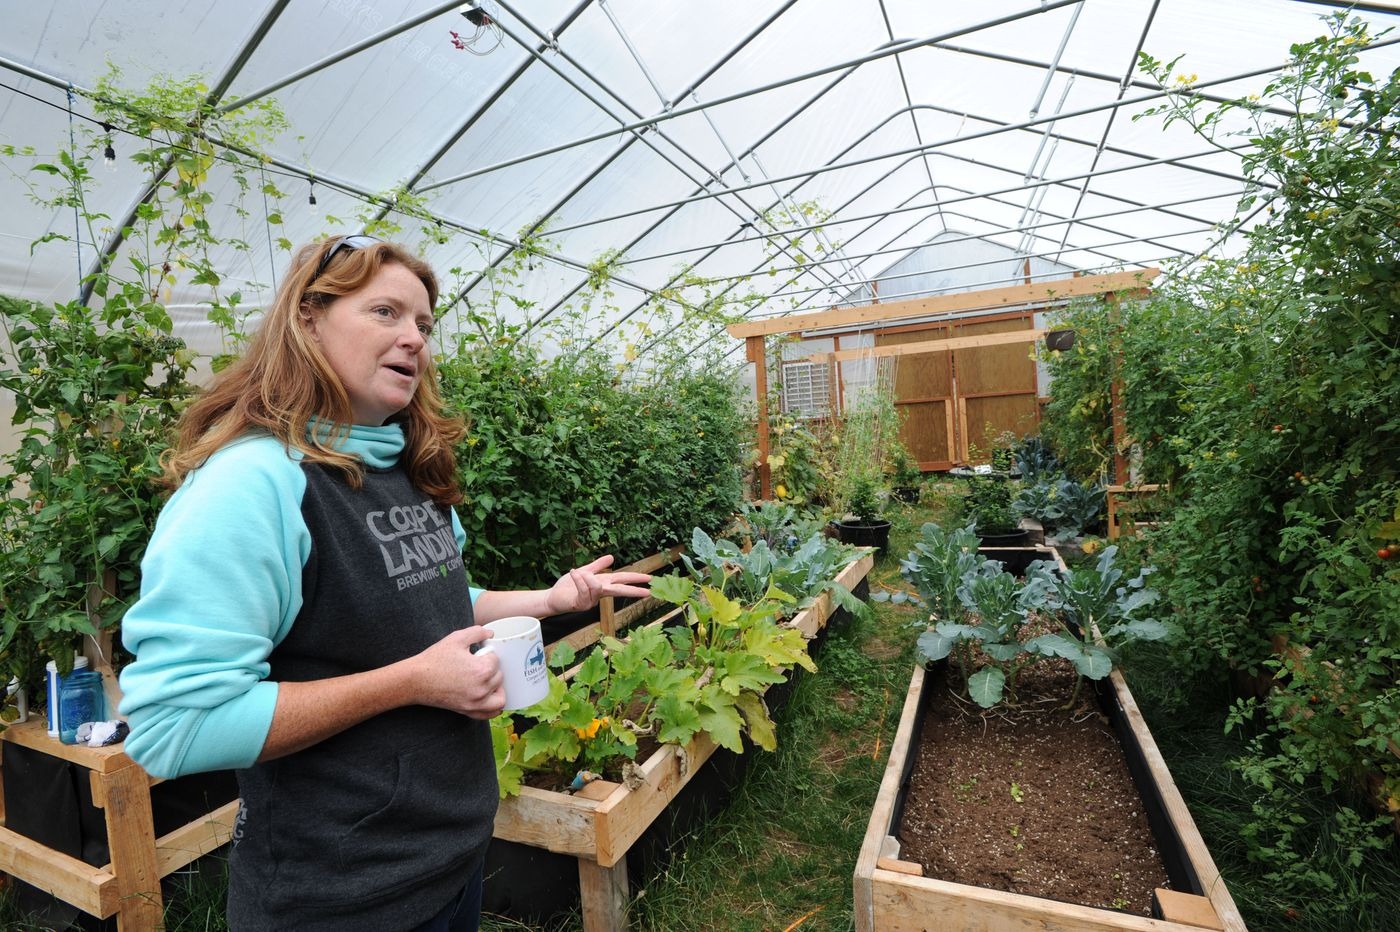 Jen Harpe talks about her businesses and the Swan Lake fire in her high tunnel greenhouse Sept. 6, 2019. (Anne Raup / ADN)